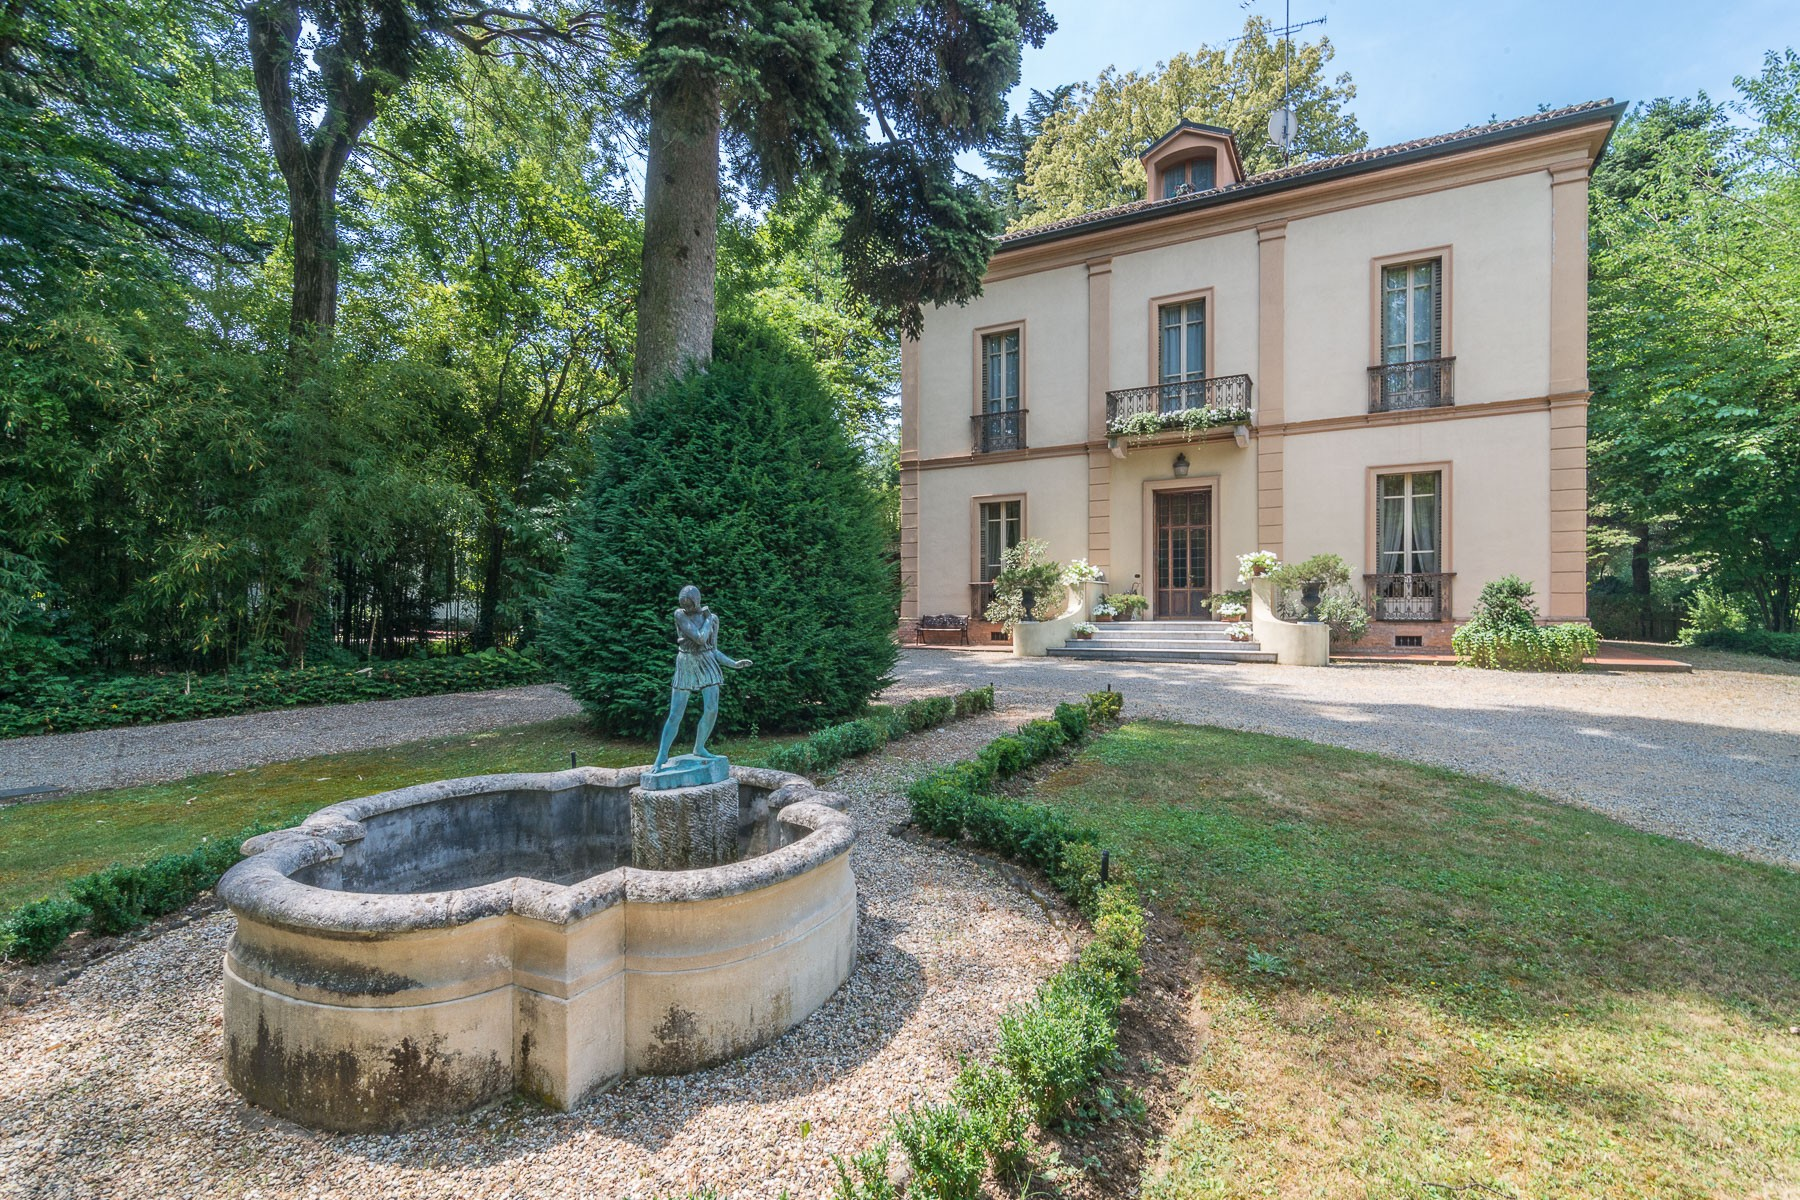 Single Family Home for Sale at Charming Villa of the XX Century immersed in the countryside Via delle Terme Salice Terme, Pavia 27052 Italy